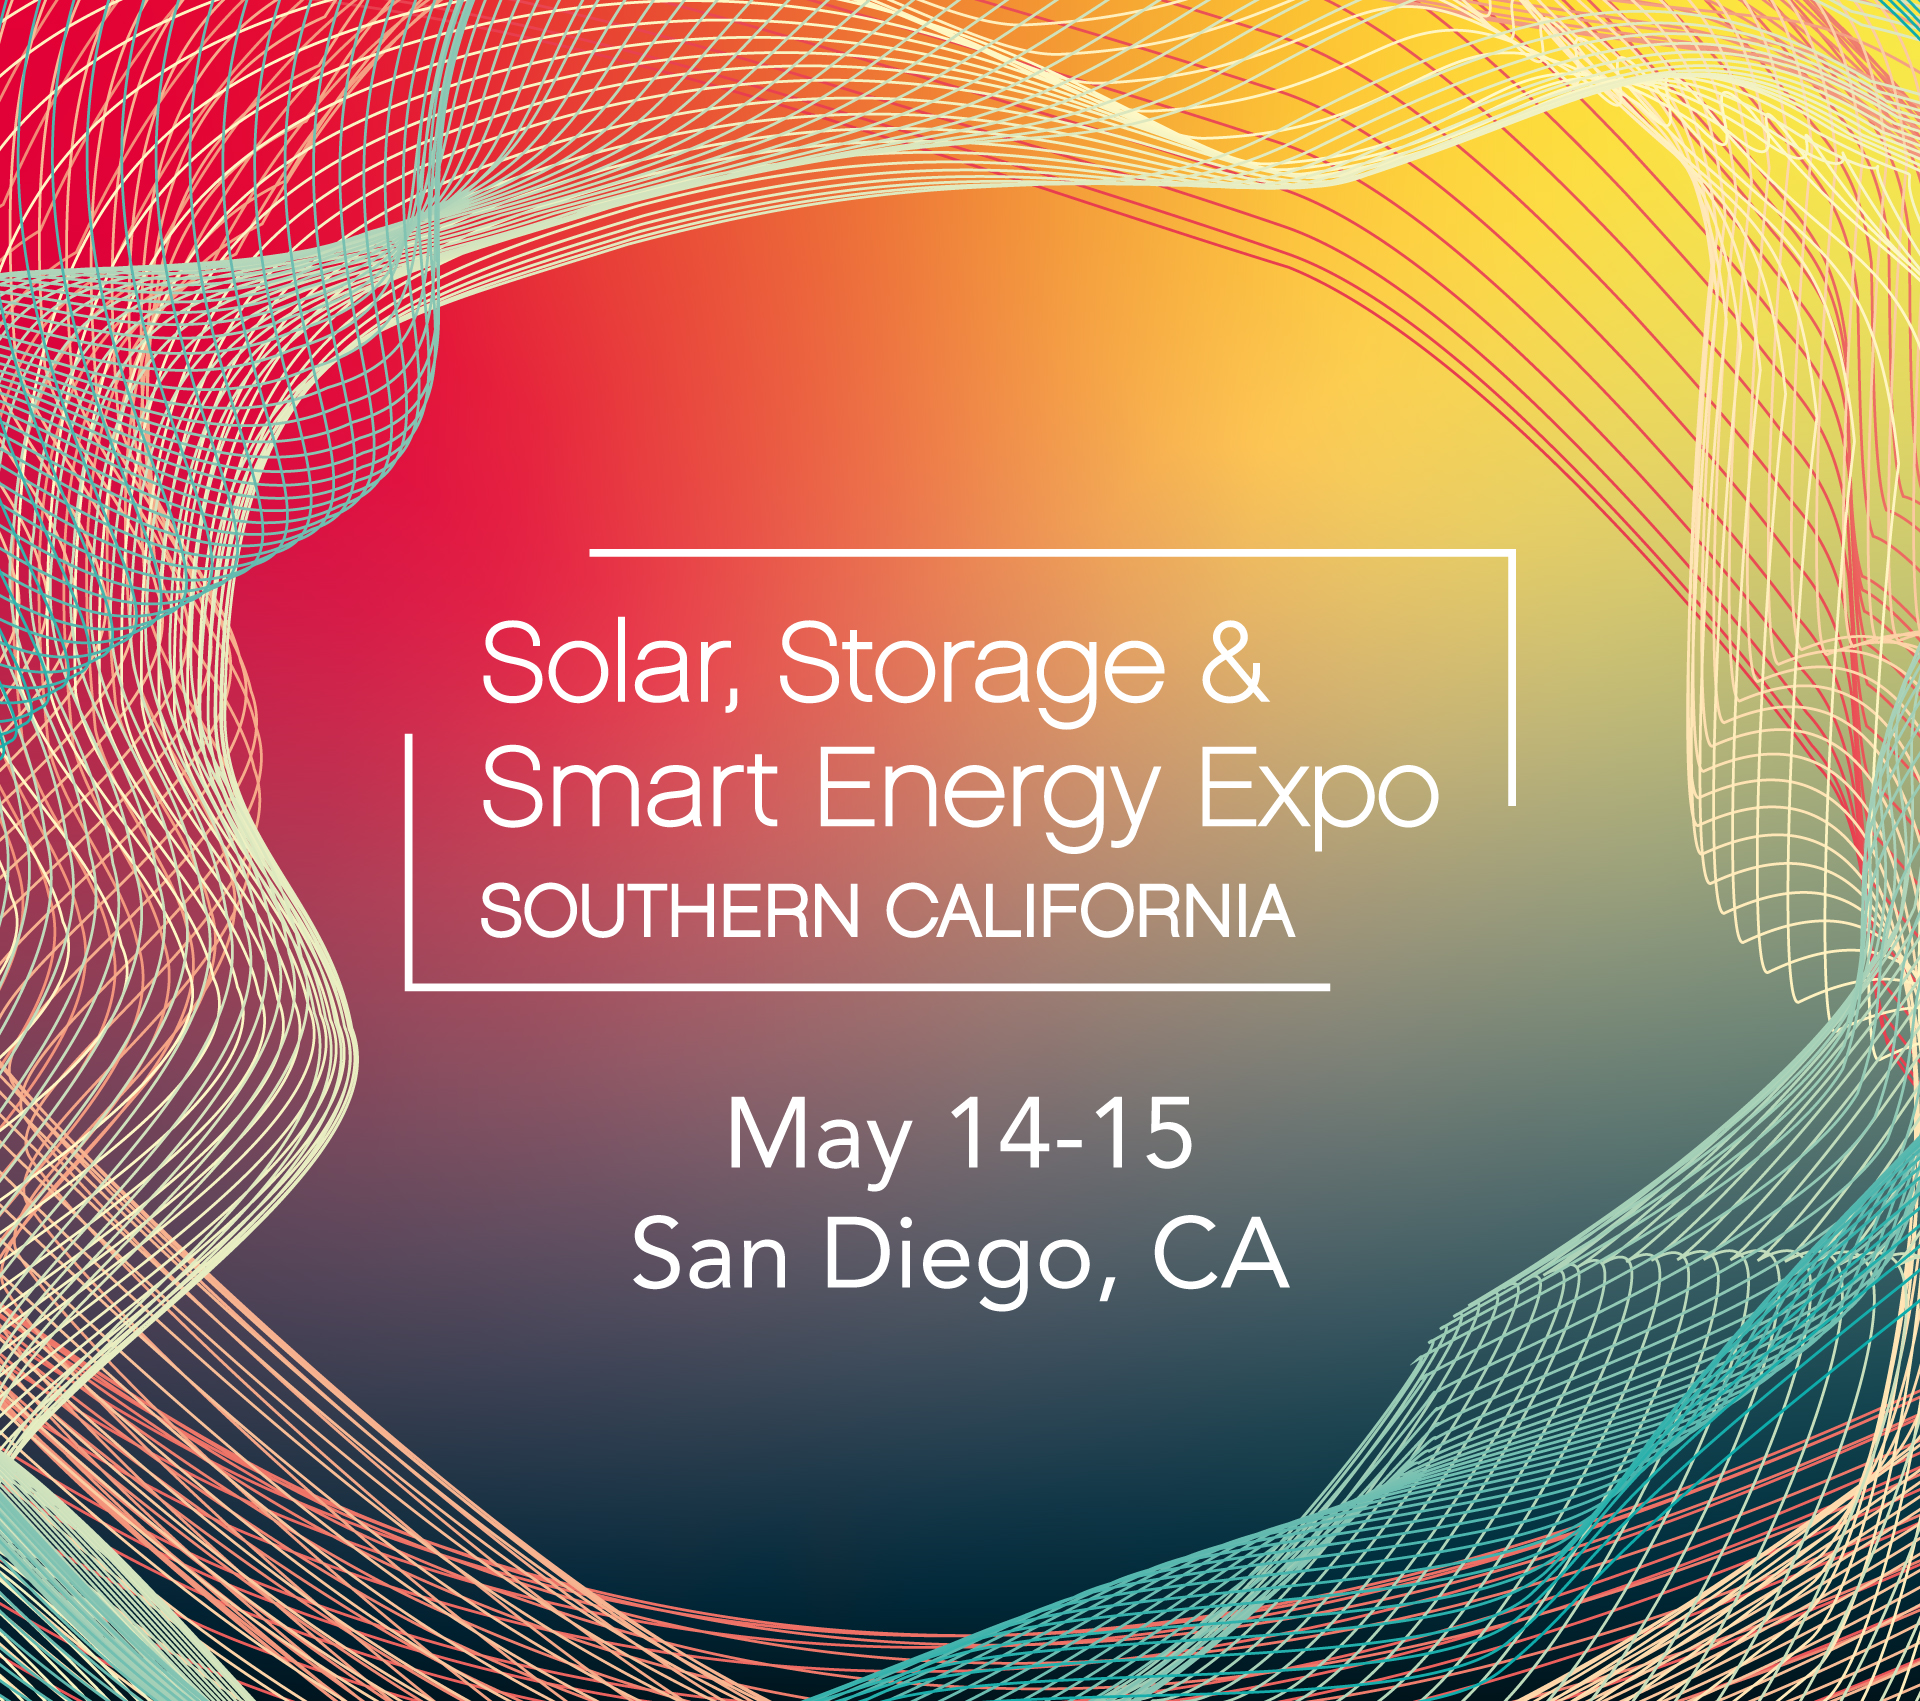 California Solar Power Expo